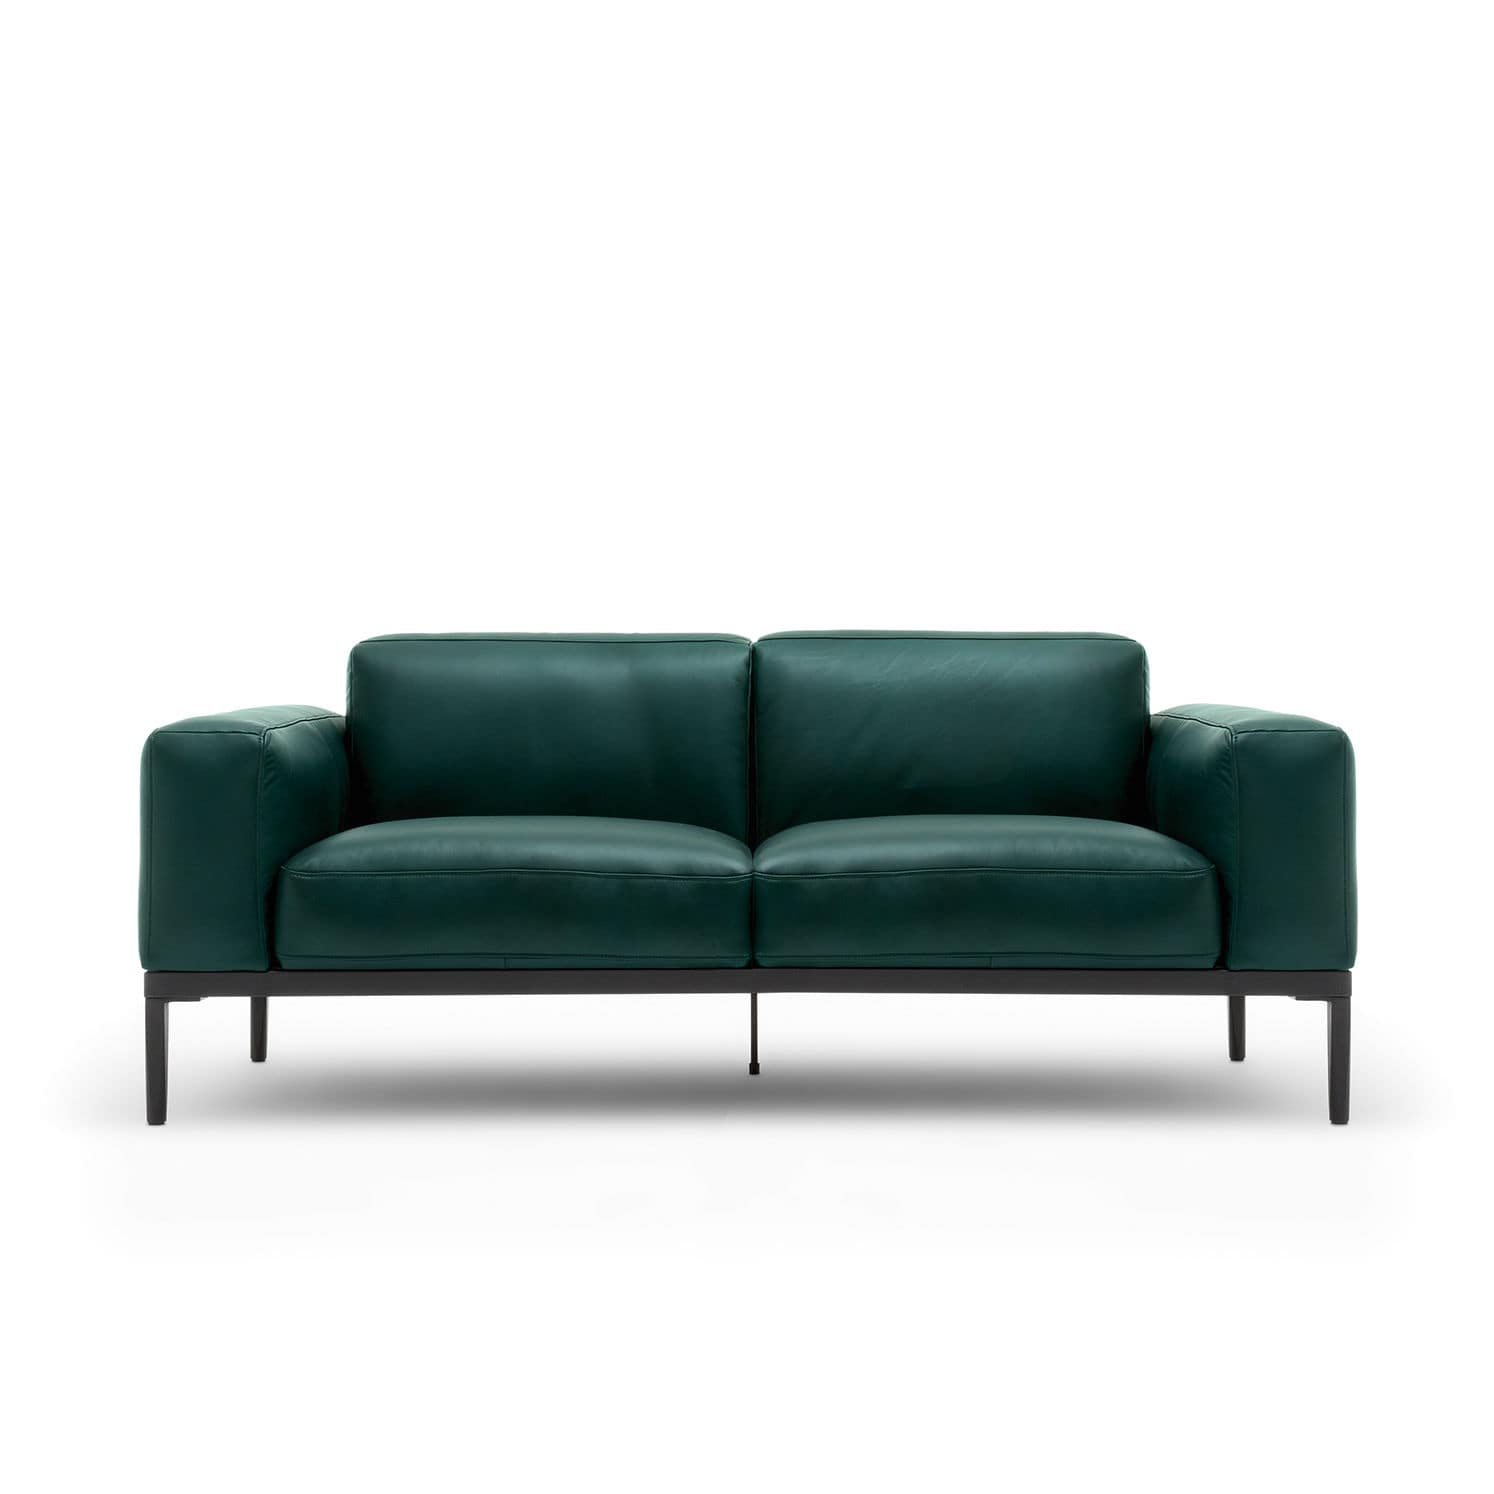 Modular sofa contemporary leather 2 seater 167 by Anders